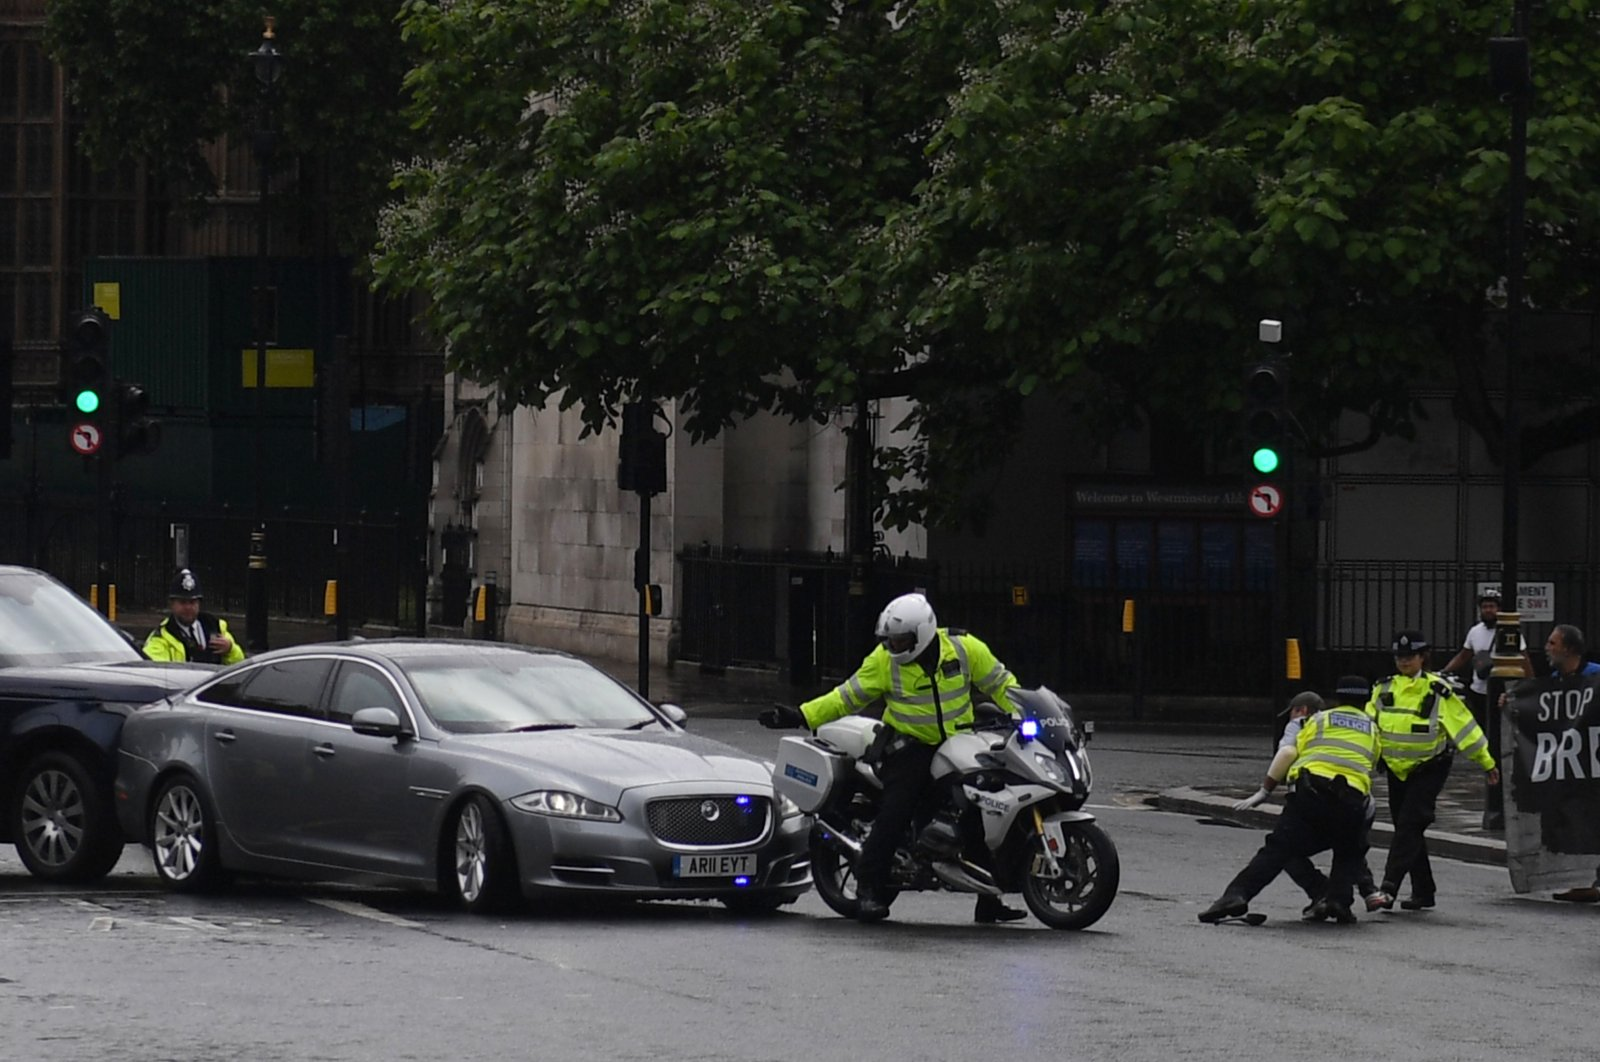 A protester from a demonstration is stopped and detained by police officers as he ran towards the car of Britain's Prime Minister Boris Johnson (C) as it was leaving with a police escort from the Houses of Parliament, London, June 17, 2020. (AFP Photo)